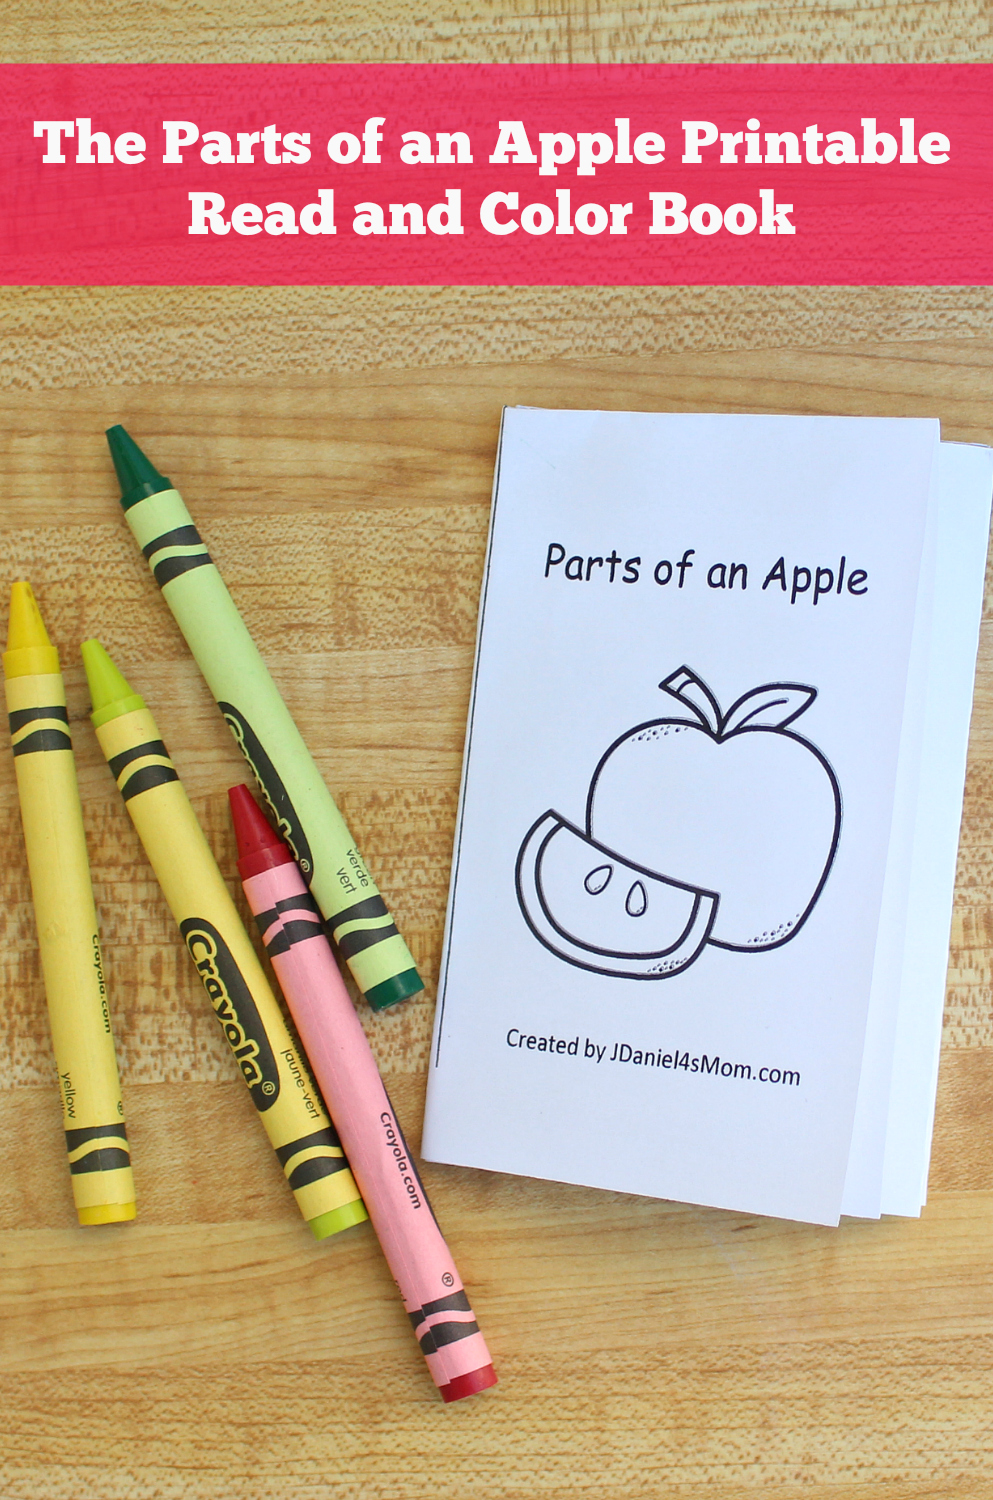 The Parts of an Apple Printable Read and Color Book